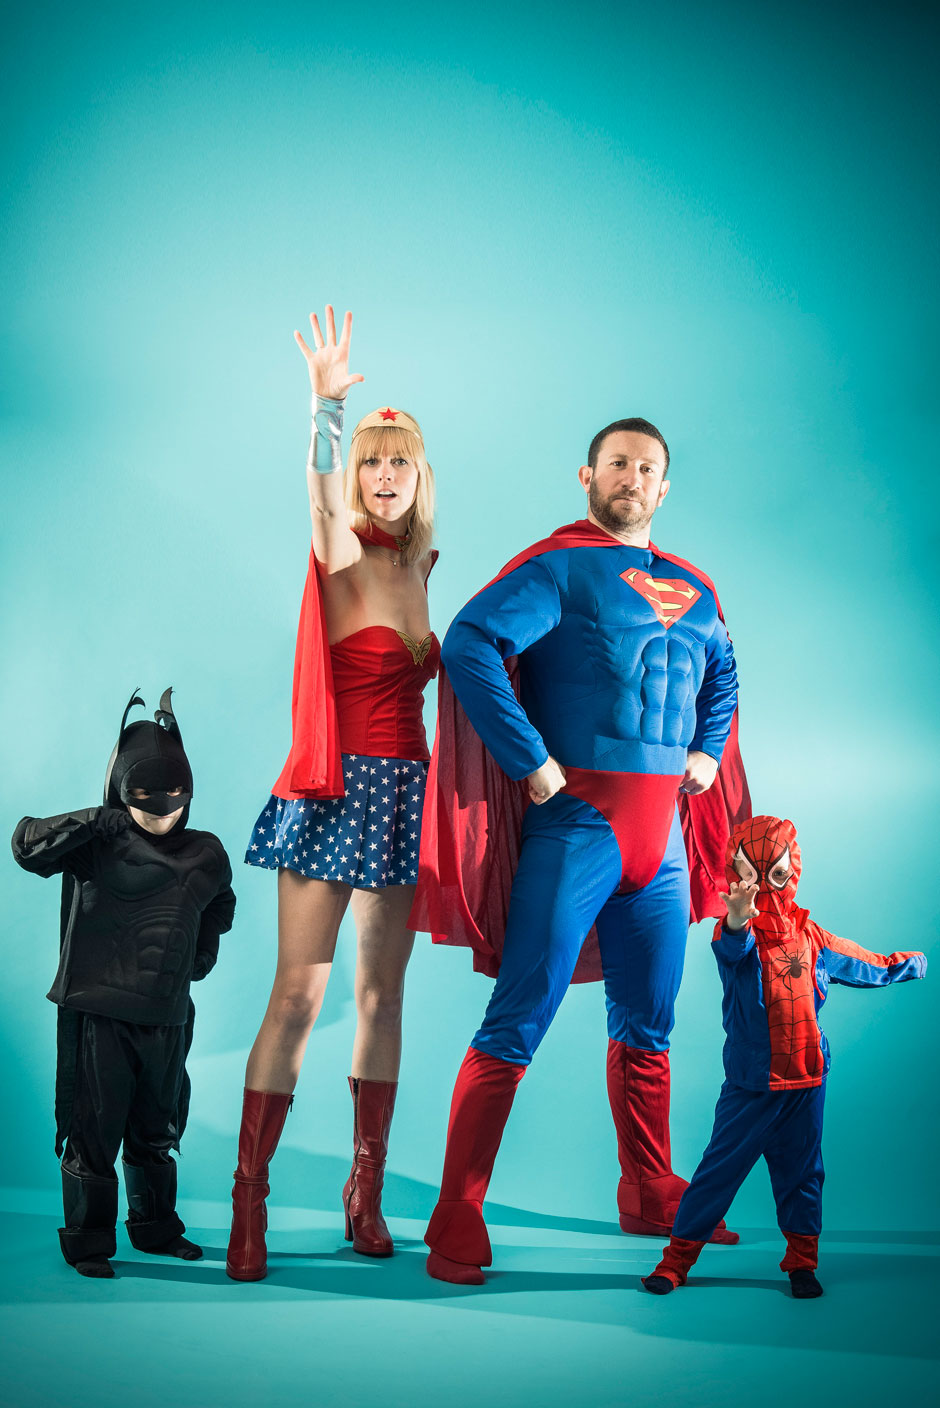 family dressed up in superheroes costumes